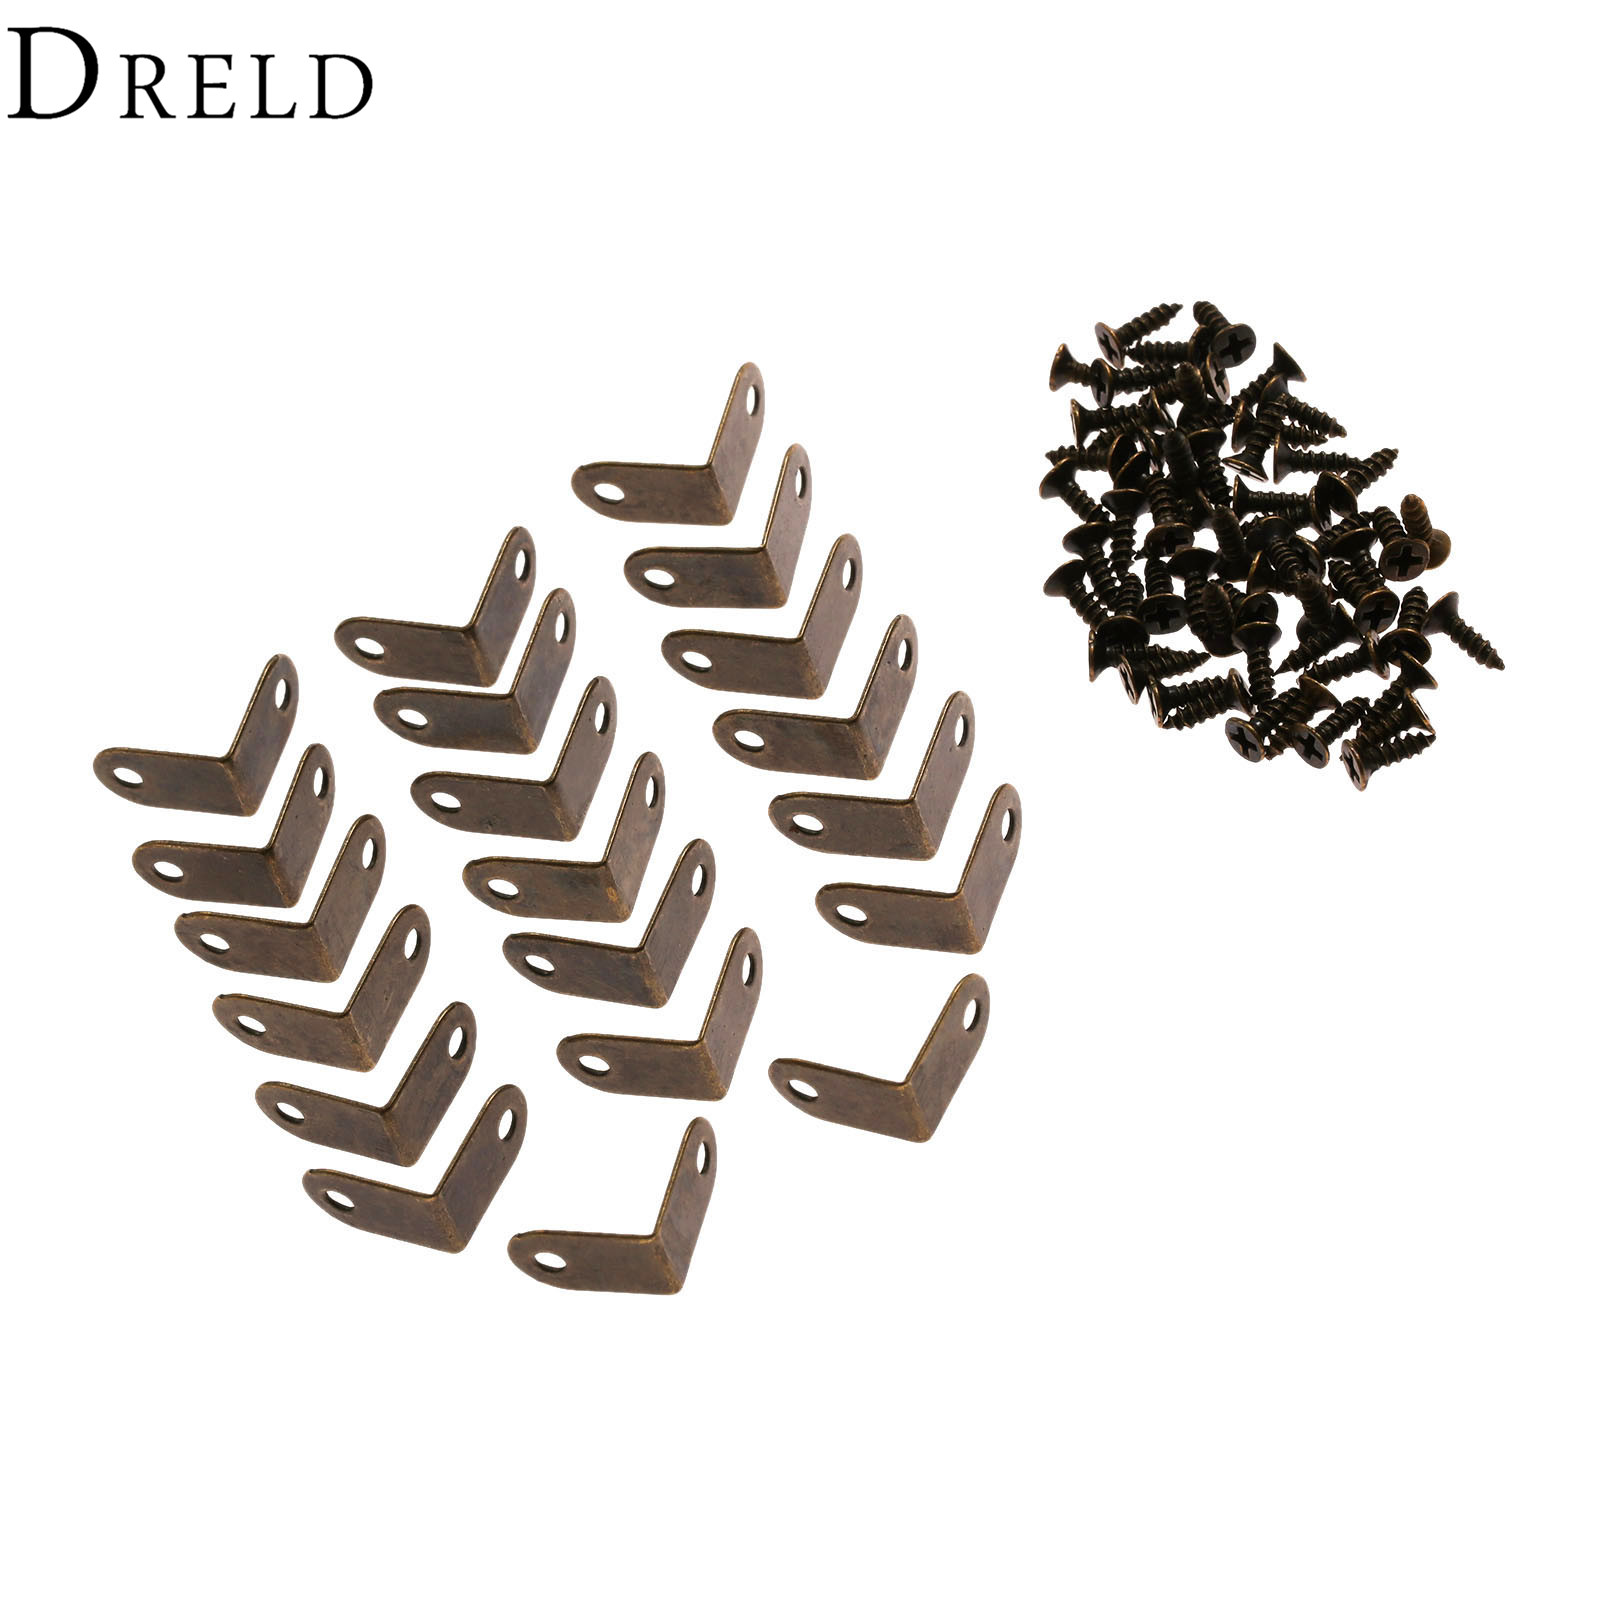 dreld-20pcs-iron-decorative-antique-jewelry-wine-gift-box-wooden-case-corner-protector-guard-bronze-decorate-your-desk-15-9mm